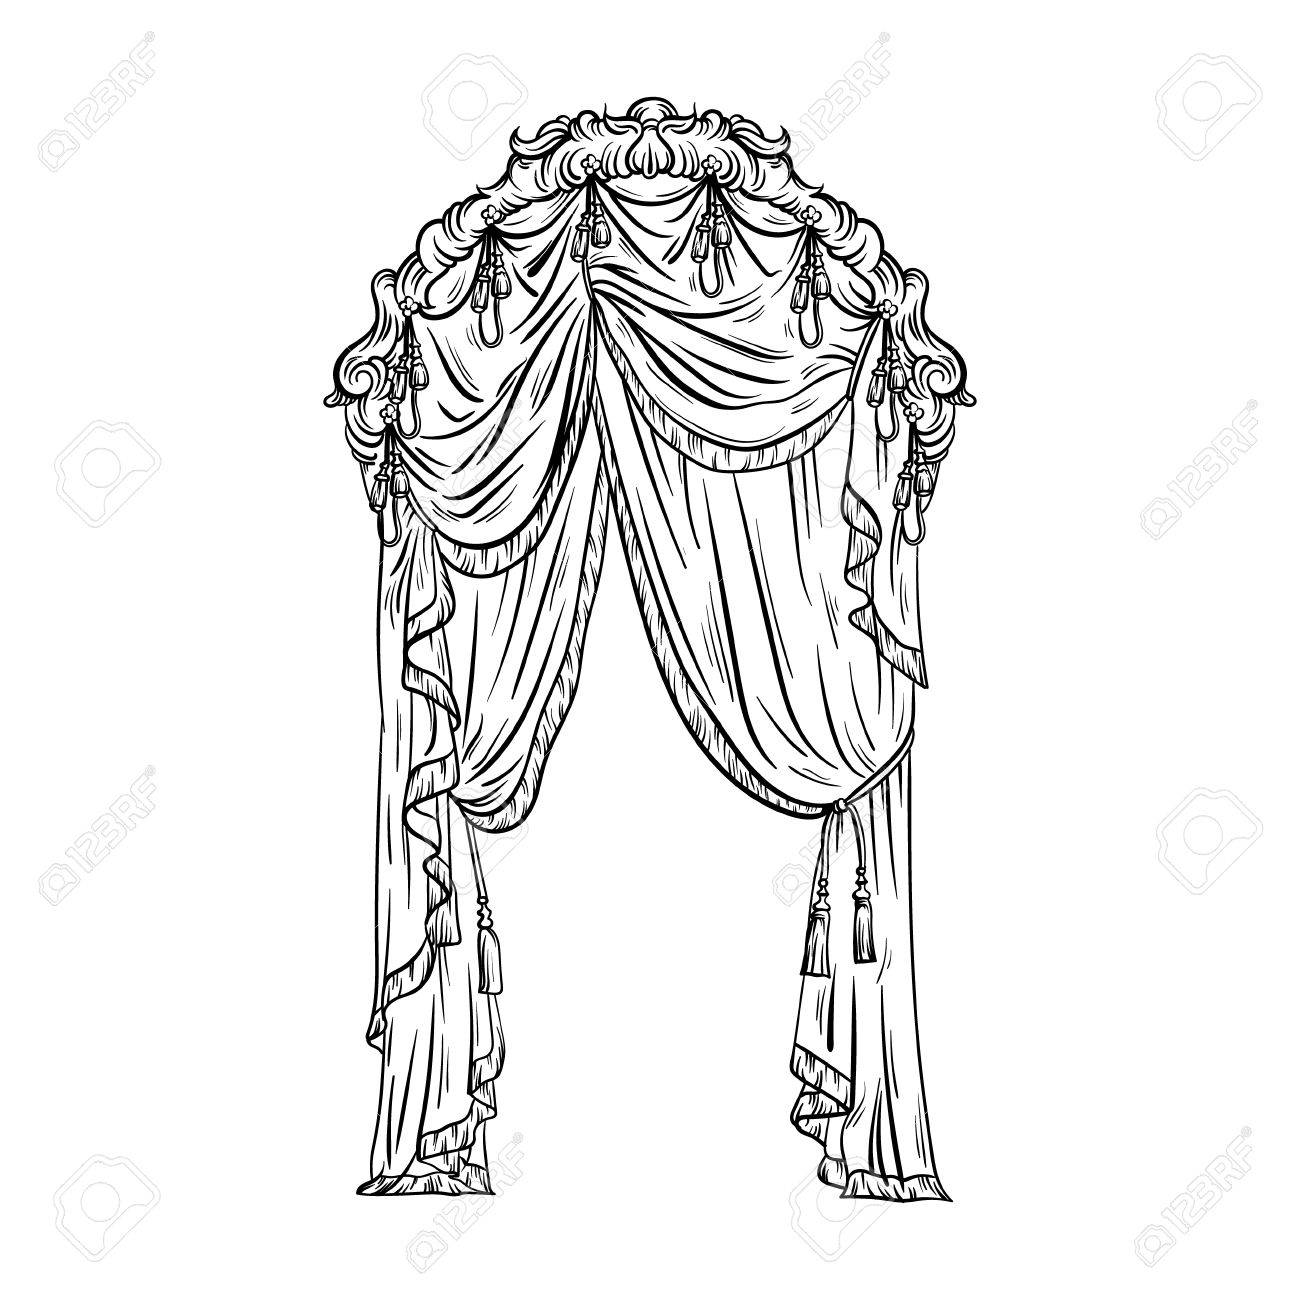 1300x1300 Vector Hand Drawn Illustration Of Window Curtain Made In Sketch